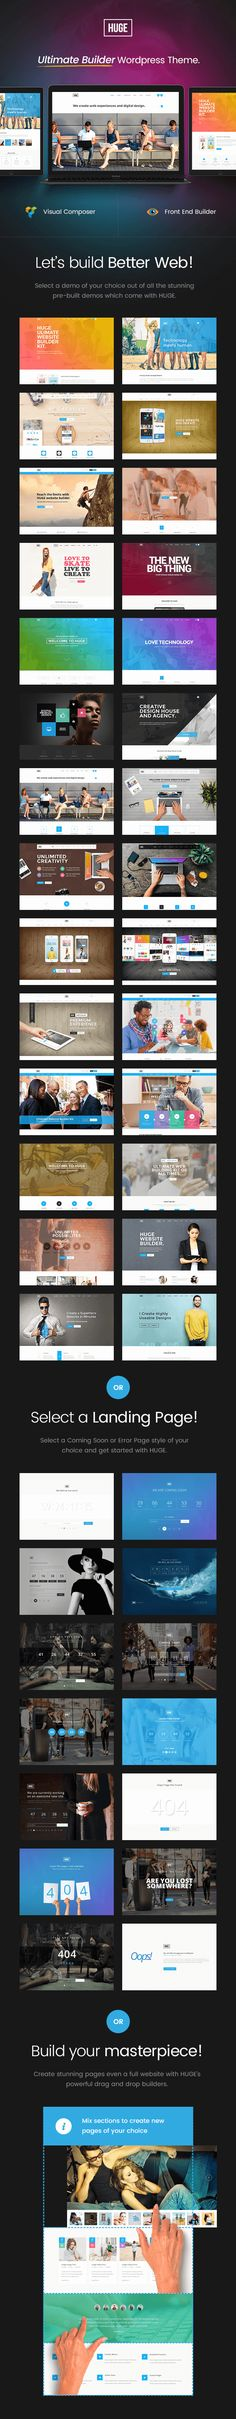 Ultimate Builder WordPress Theme With 30+ Homepage Layouts